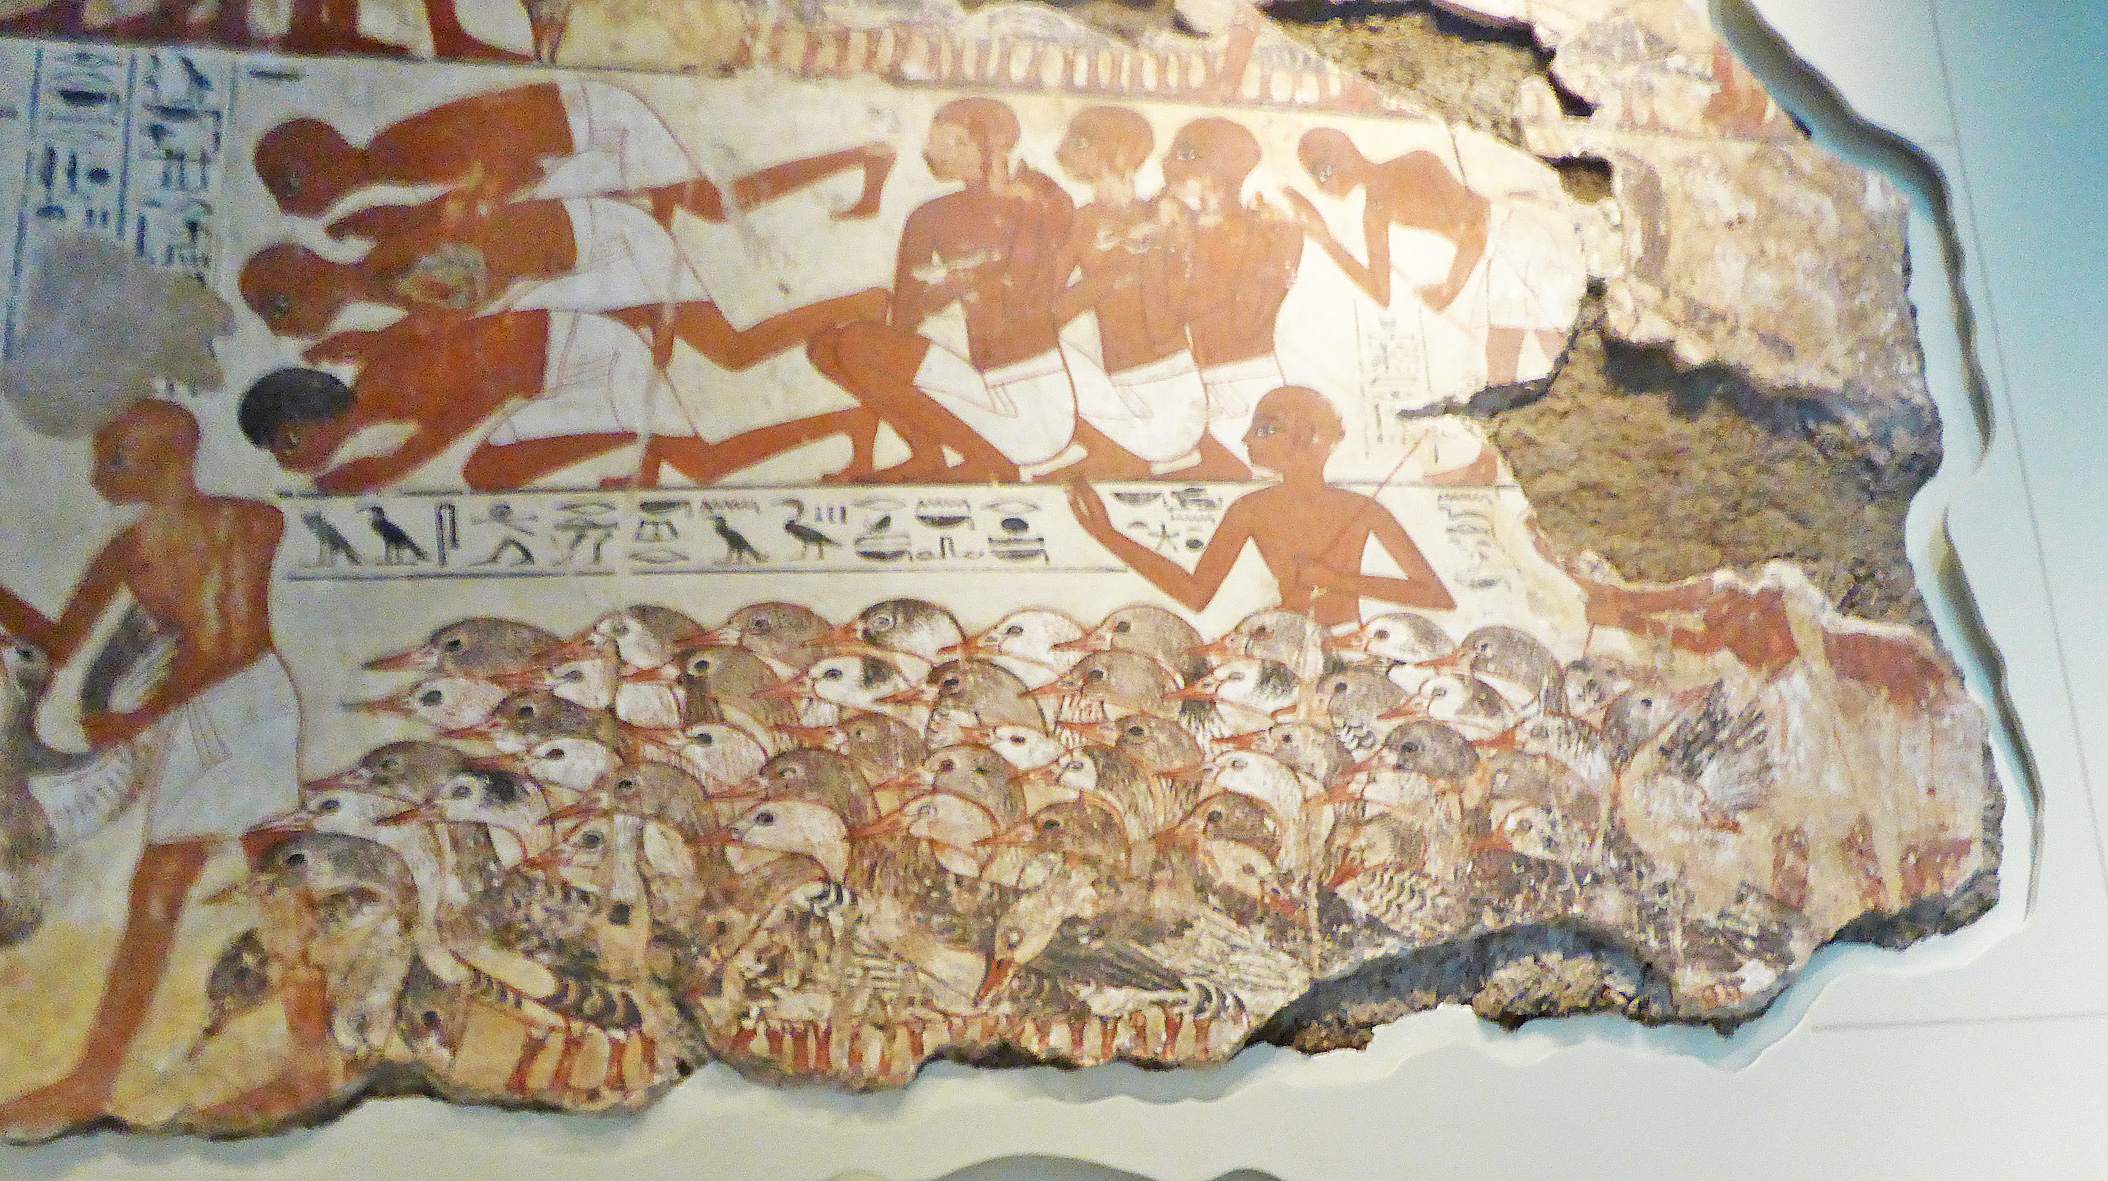 Tomb of Nebamun and herd of geese